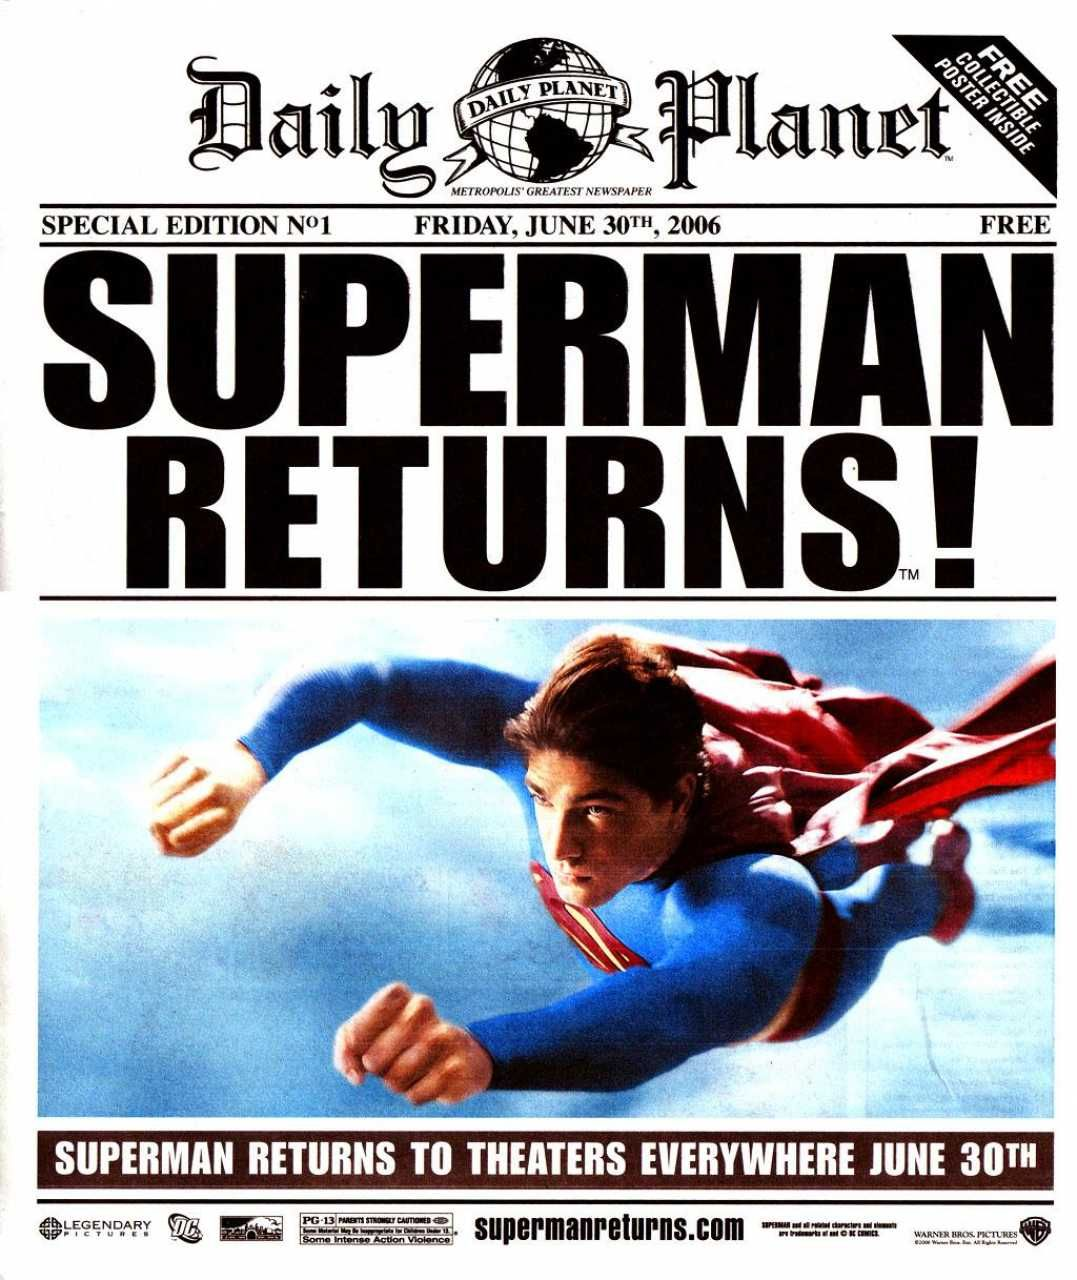 daily planet special edition: superman returns! #1 - friday, june